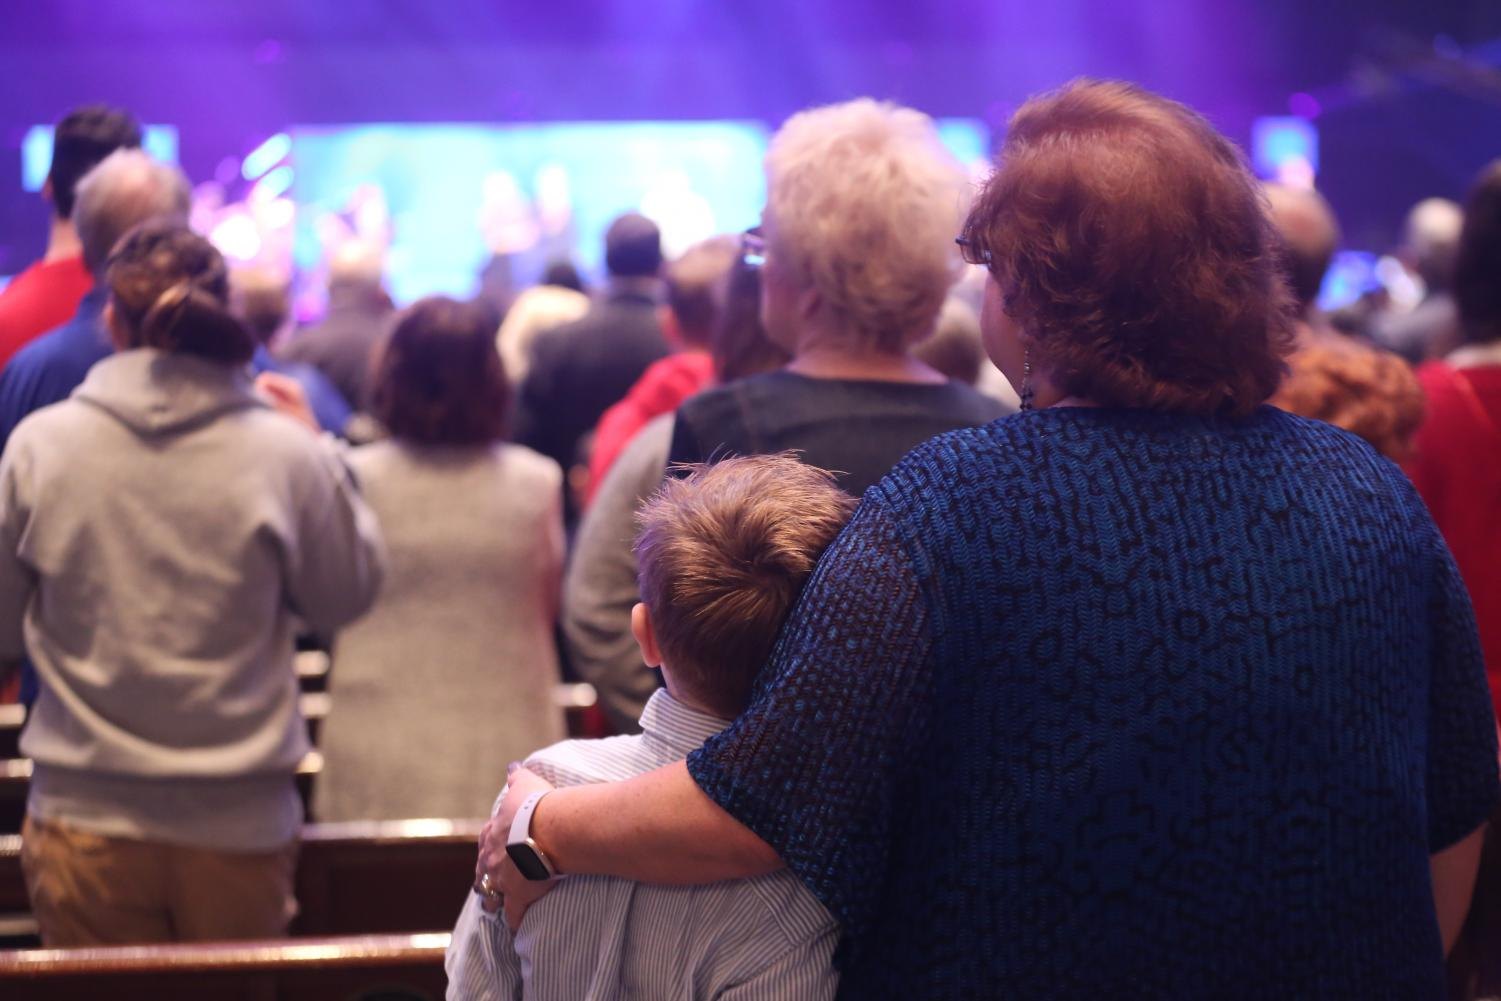 All+School+Worship+on+Grandparent%27s+Day+is+a+time+for+families+to+worship+the+Lord+together.+A+Lower+School+grandson+and+grandmother+snuggle+as+they+sing.+